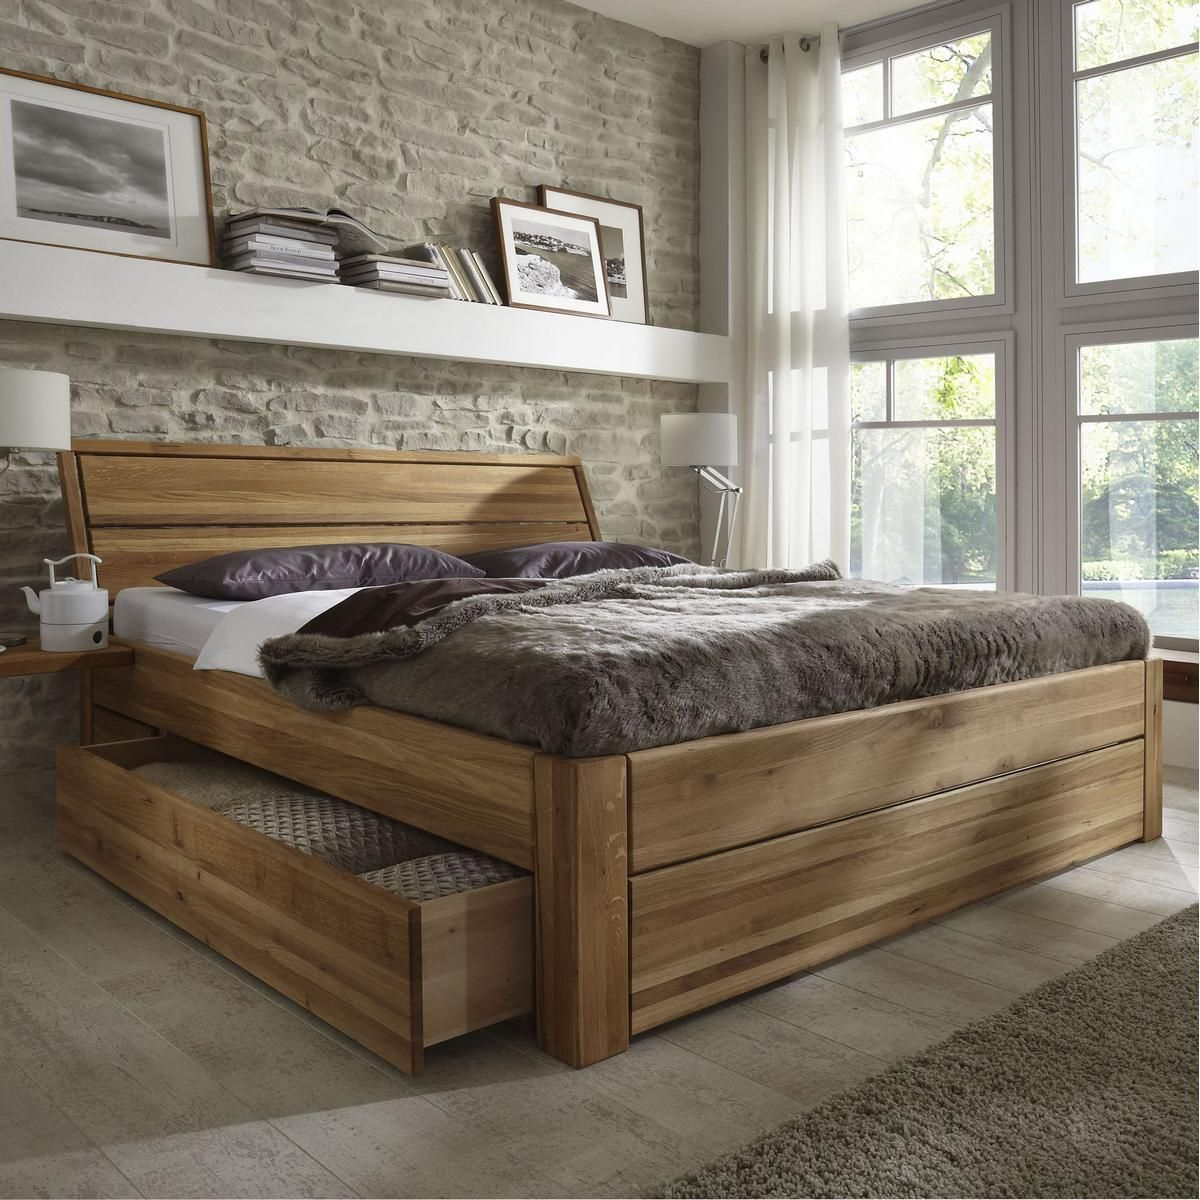 massivholz schubladenbett 180x200 holzbett bett eiche massiv ge lt idea pinterest bedrooms. Black Bedroom Furniture Sets. Home Design Ideas